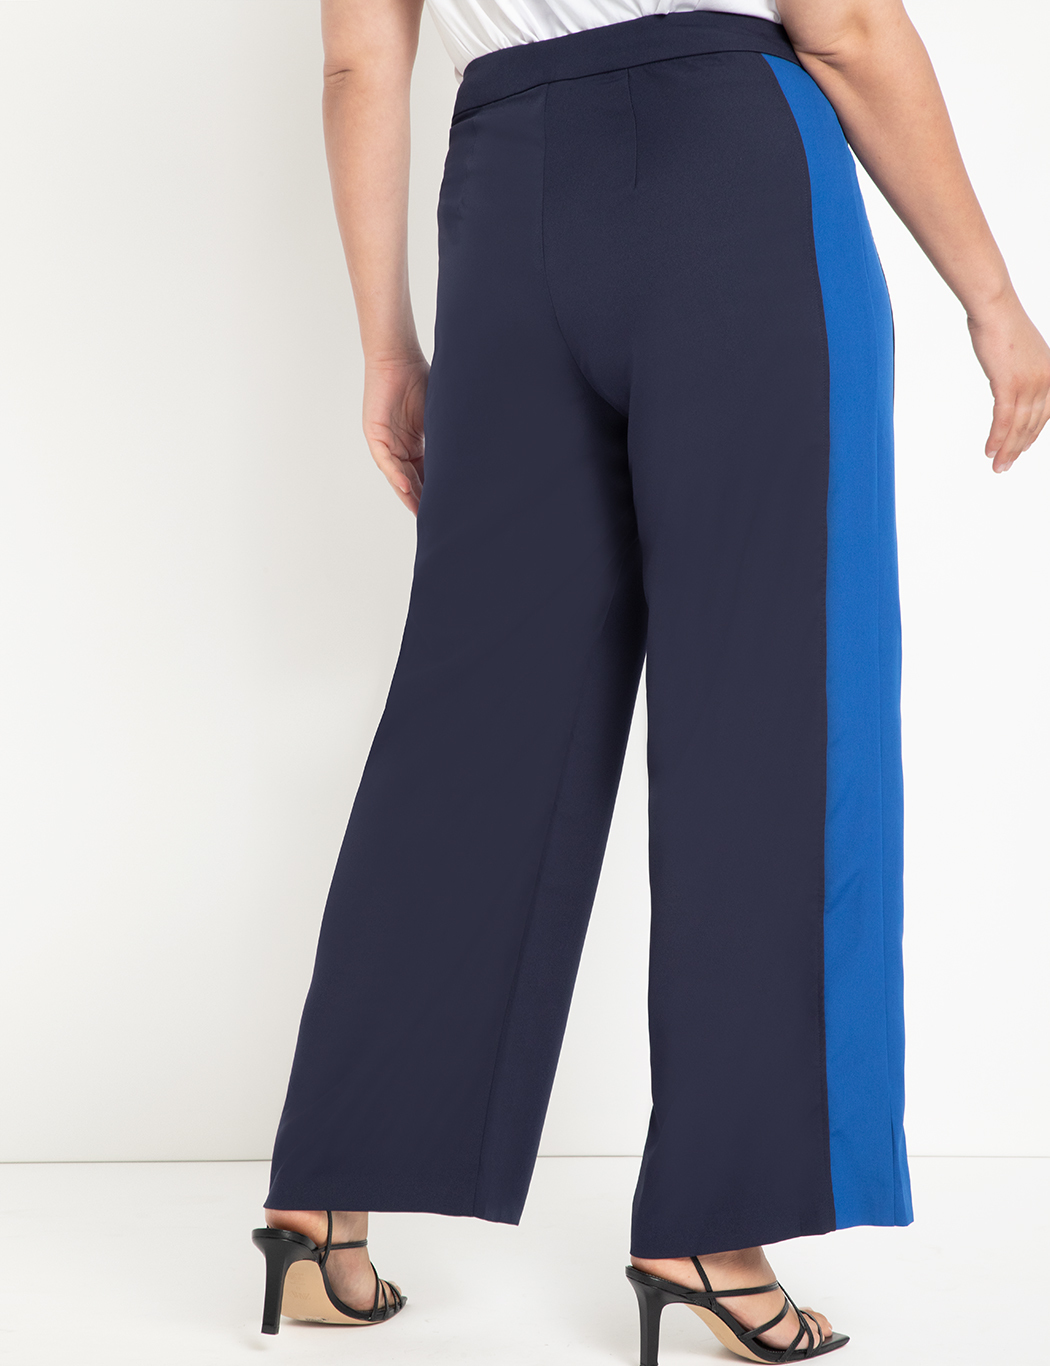 Flare Leg Trouser with Contrast Trim